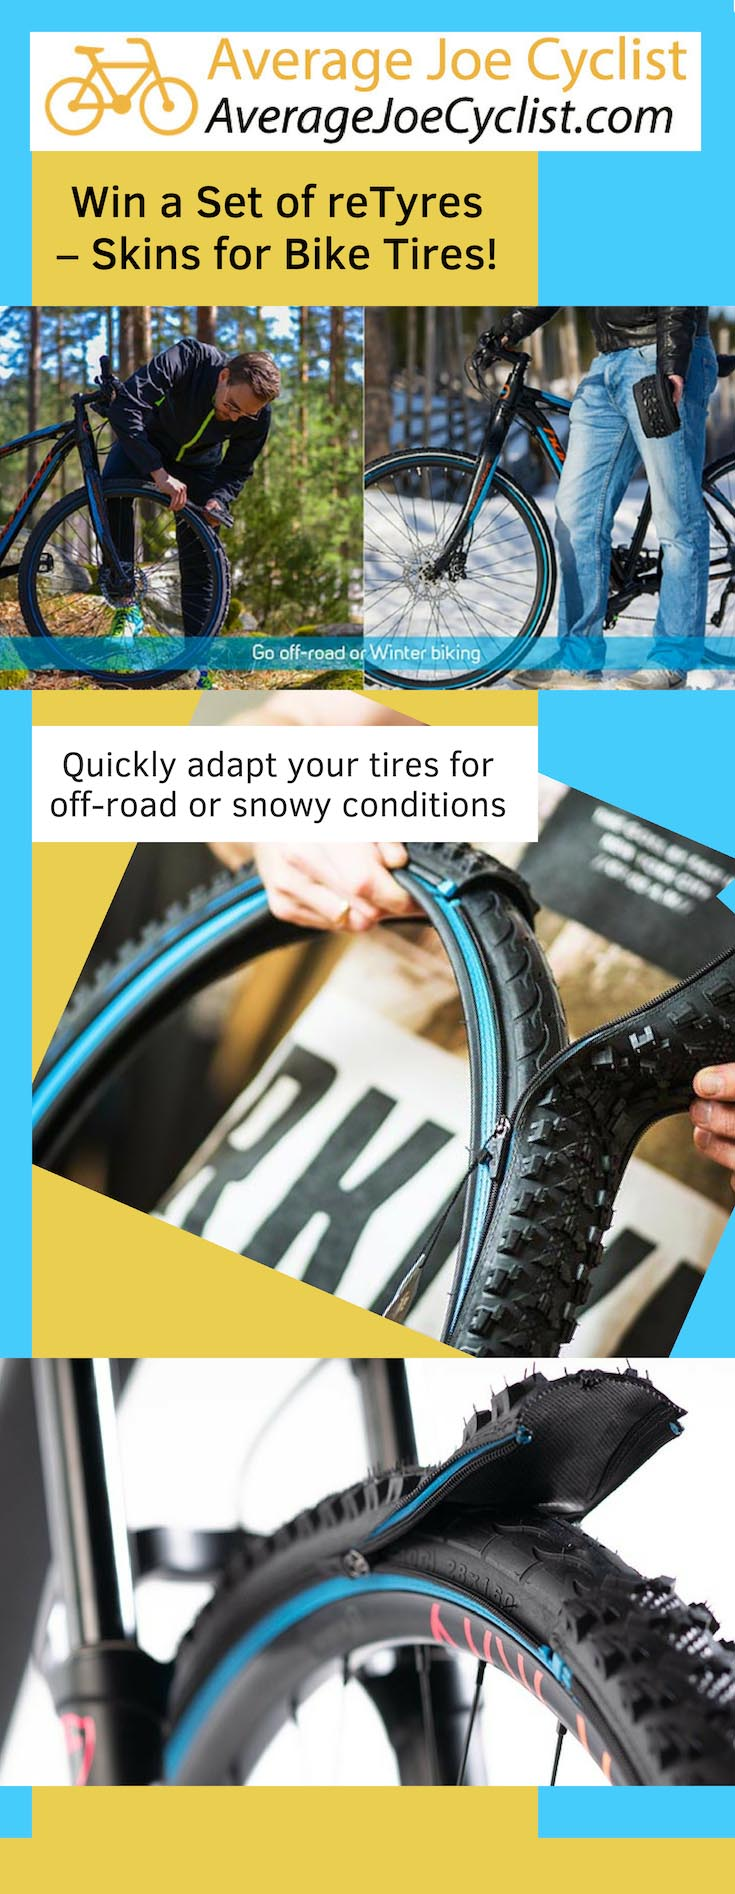 Win a Set of reTyres – Skins for Bike Tires!